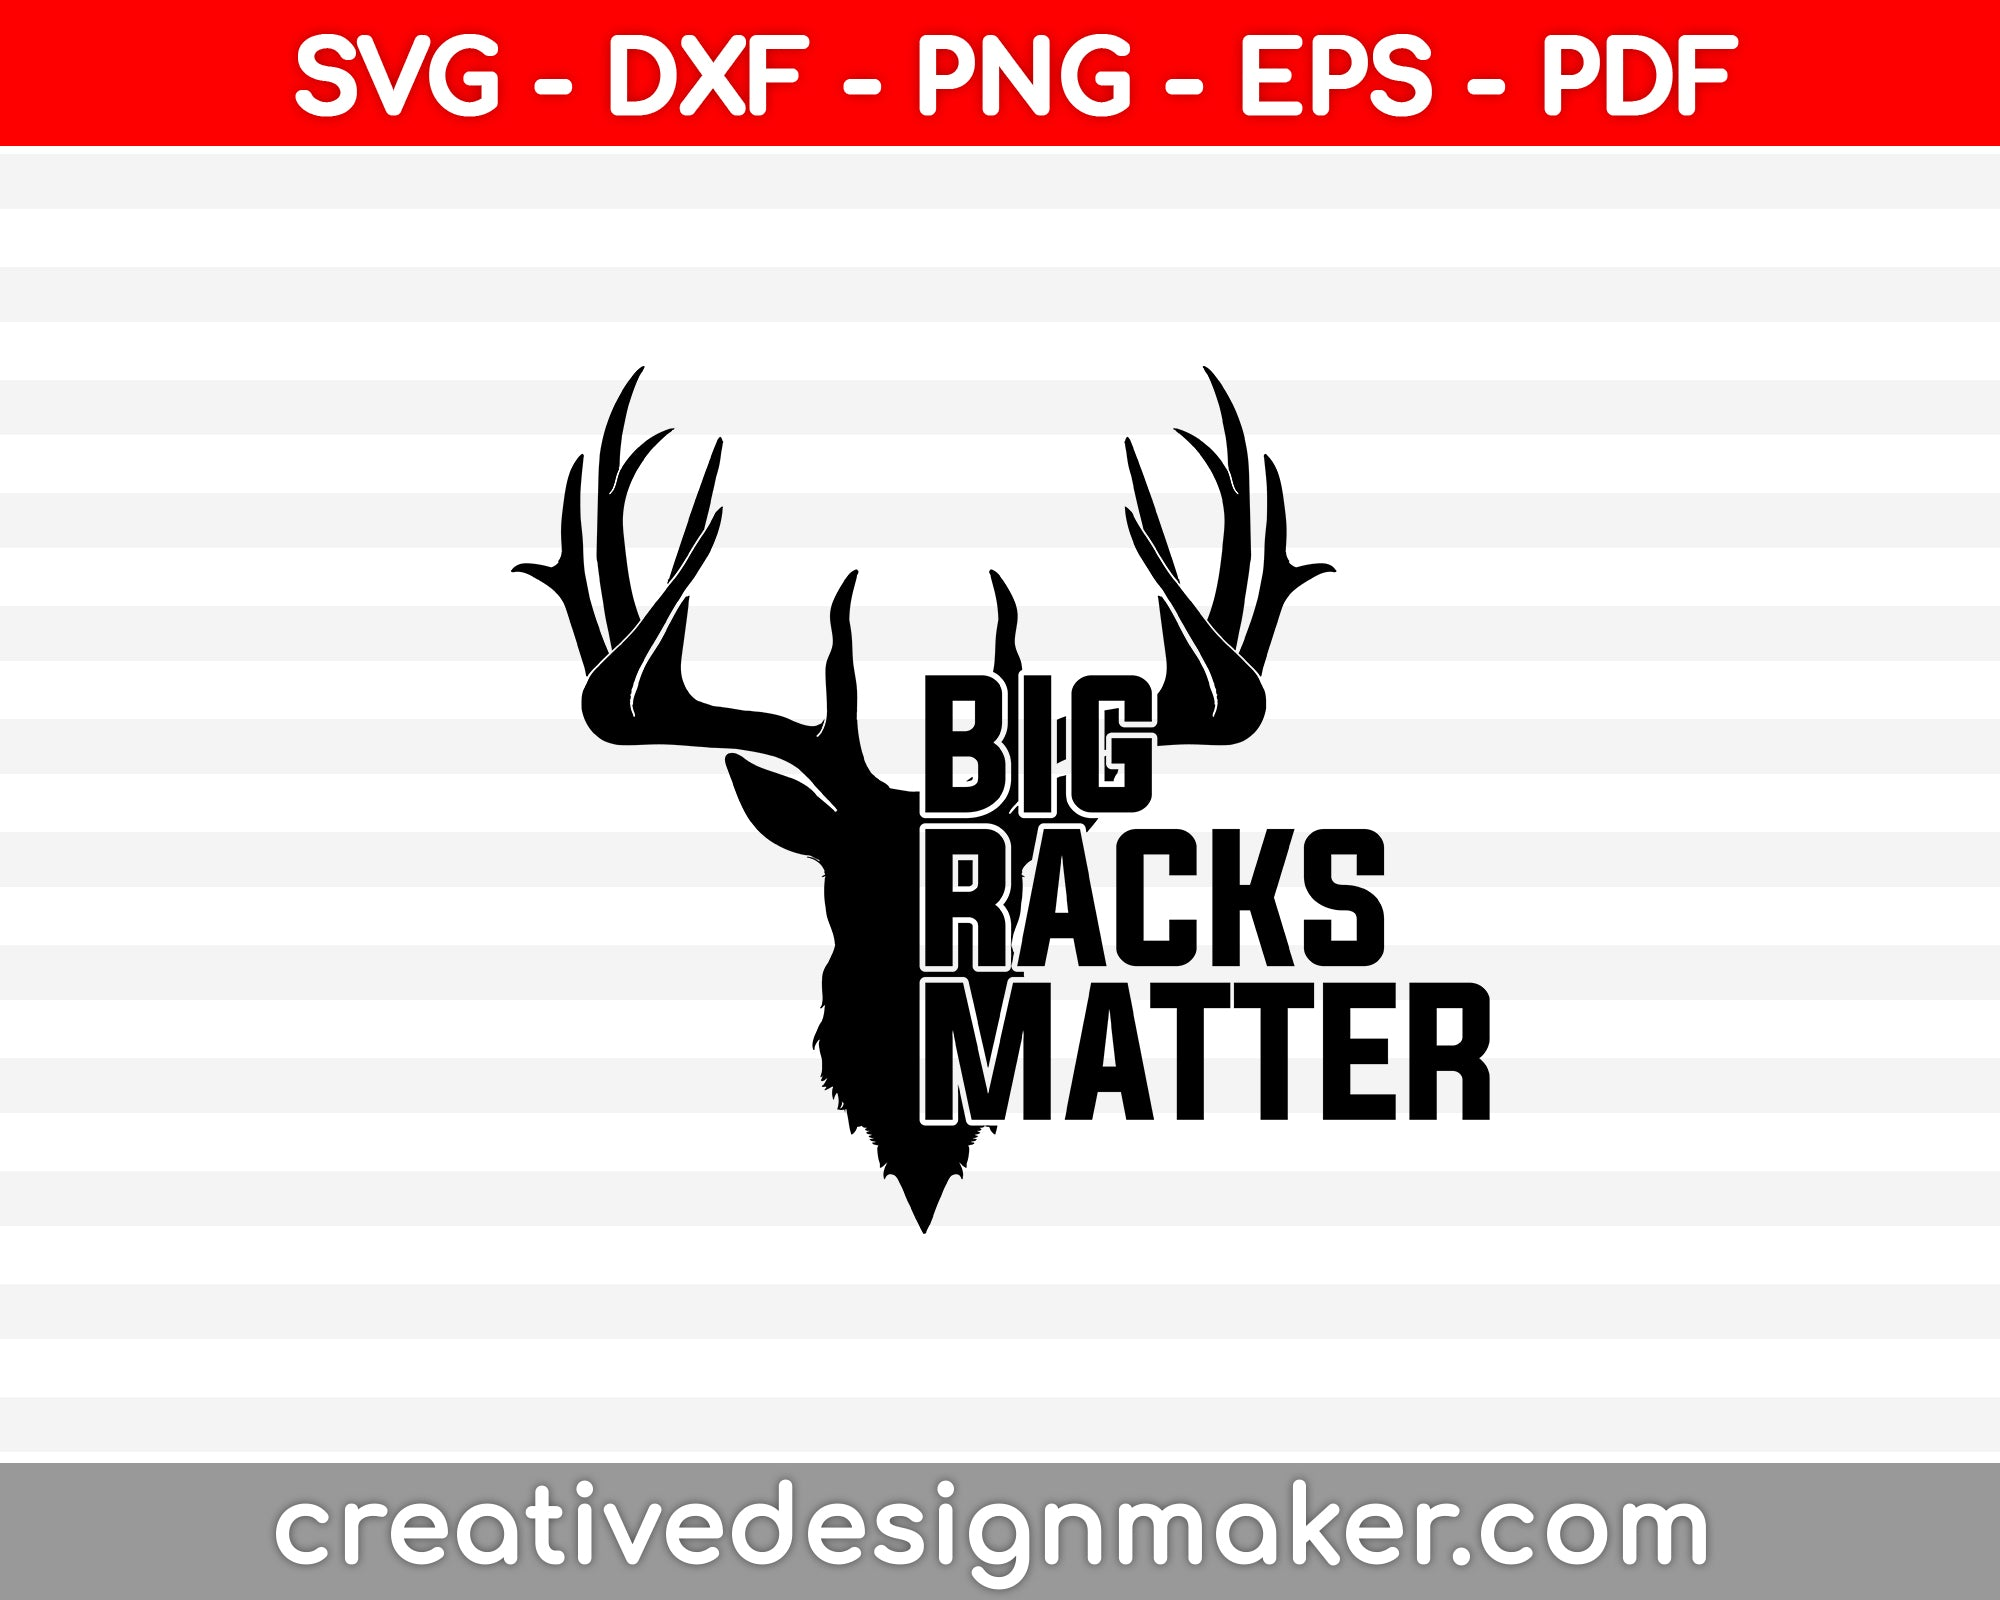 Big Racks Matter funny Deer Buck Hunting SVG PNG Cutting Printable Files